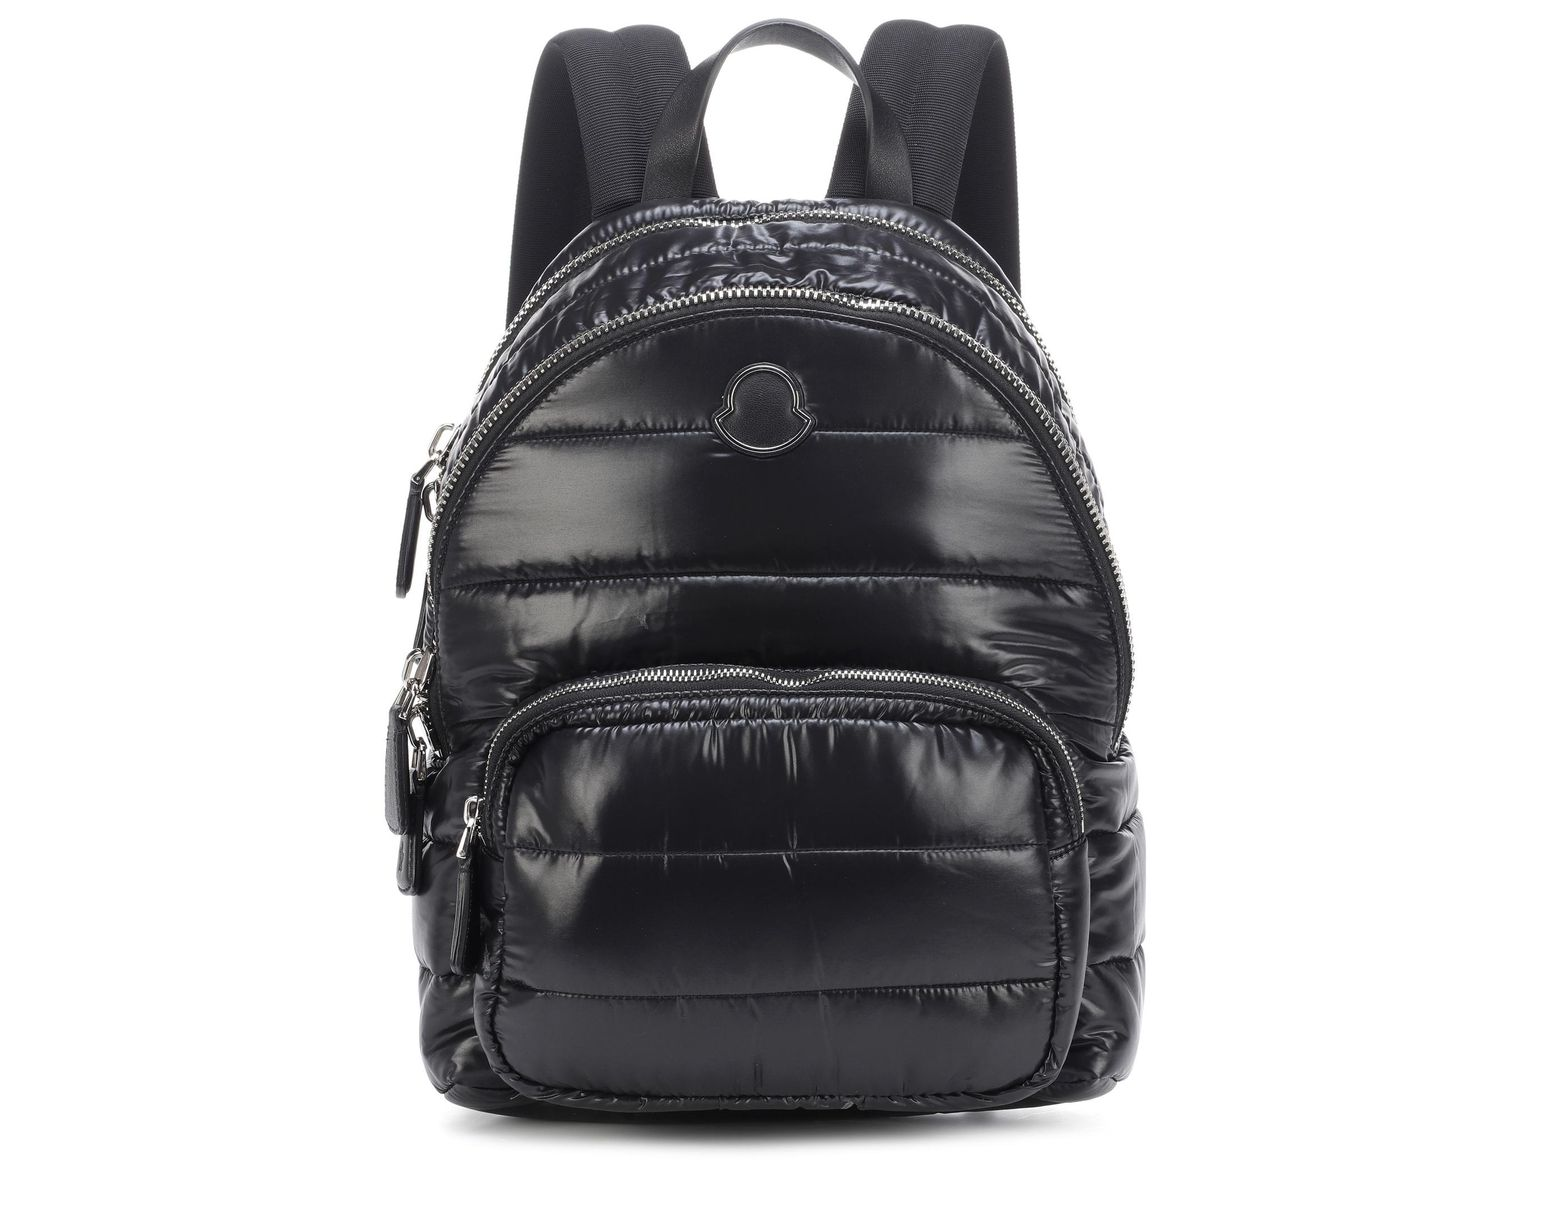 fa974a736 Women's Black Kilia Medium Quilted Backpack